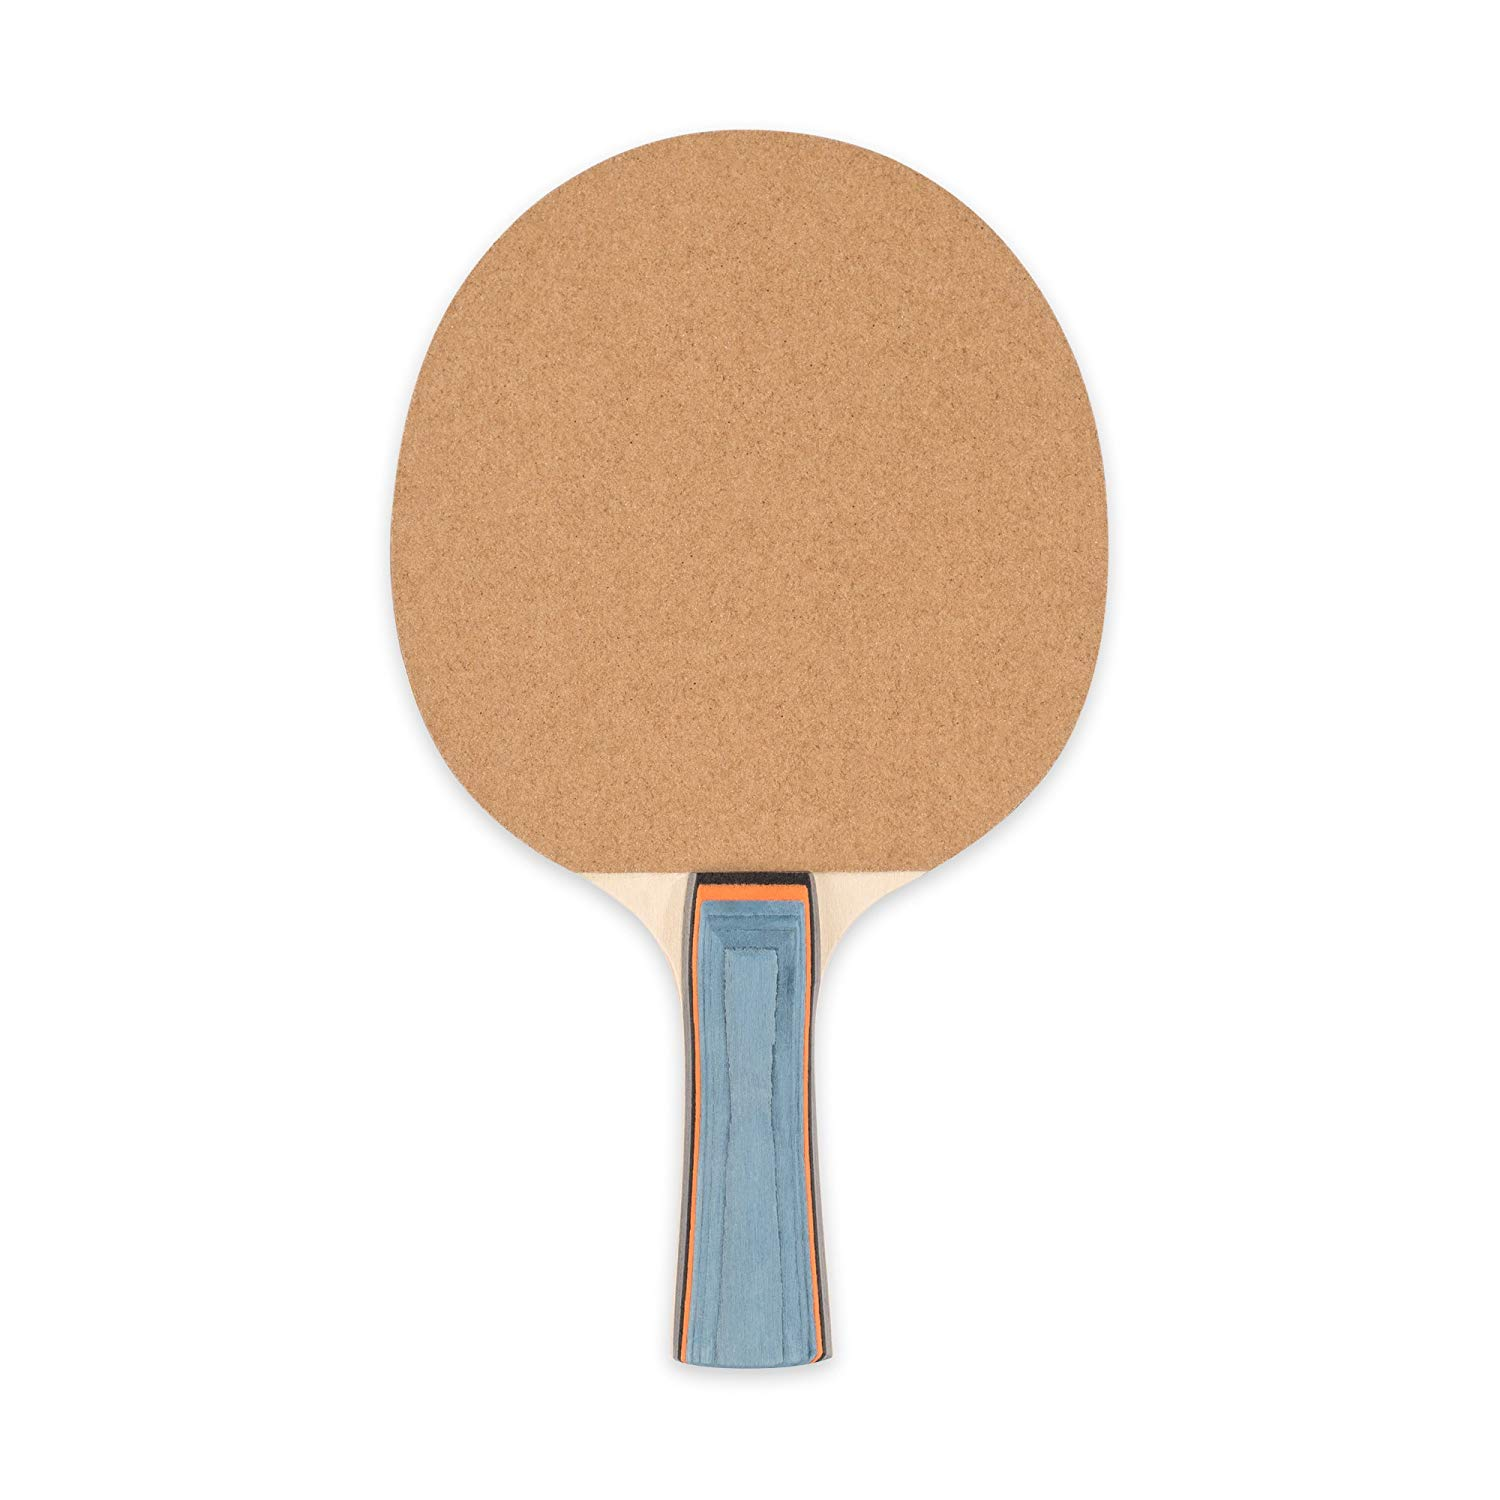 1500x1500 Champion Sports Pn2 Table Tennis Paddle Ping Pong